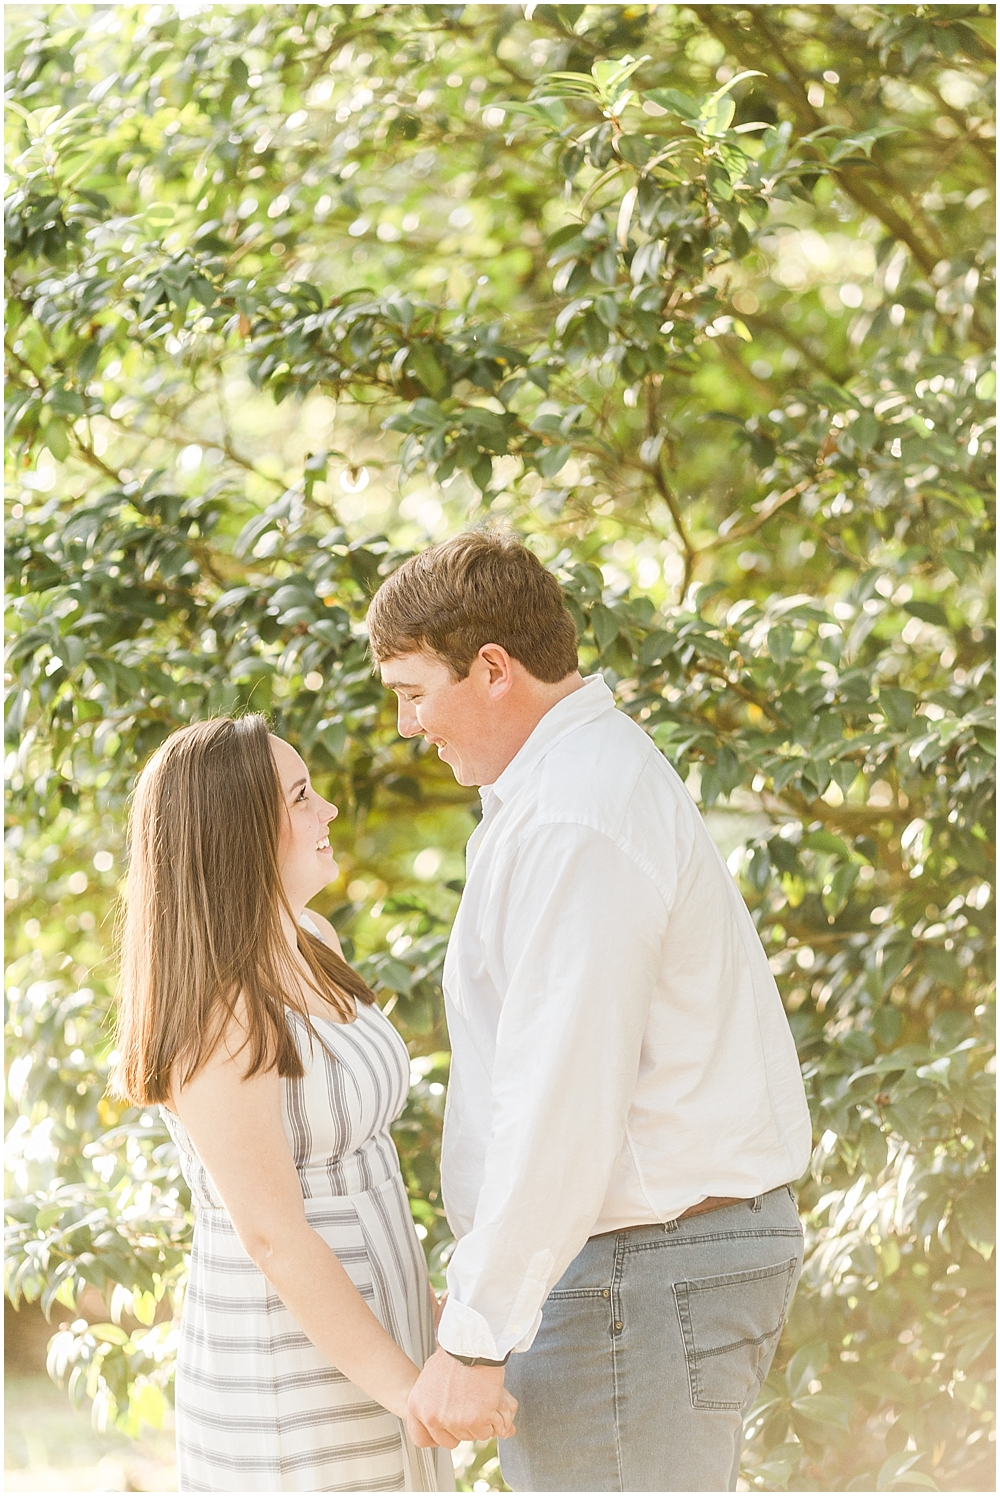 Ashton-Clark-Photography-Wedding-Portrait-Family-Photographer-Mobile-Alabama_0409.jpg